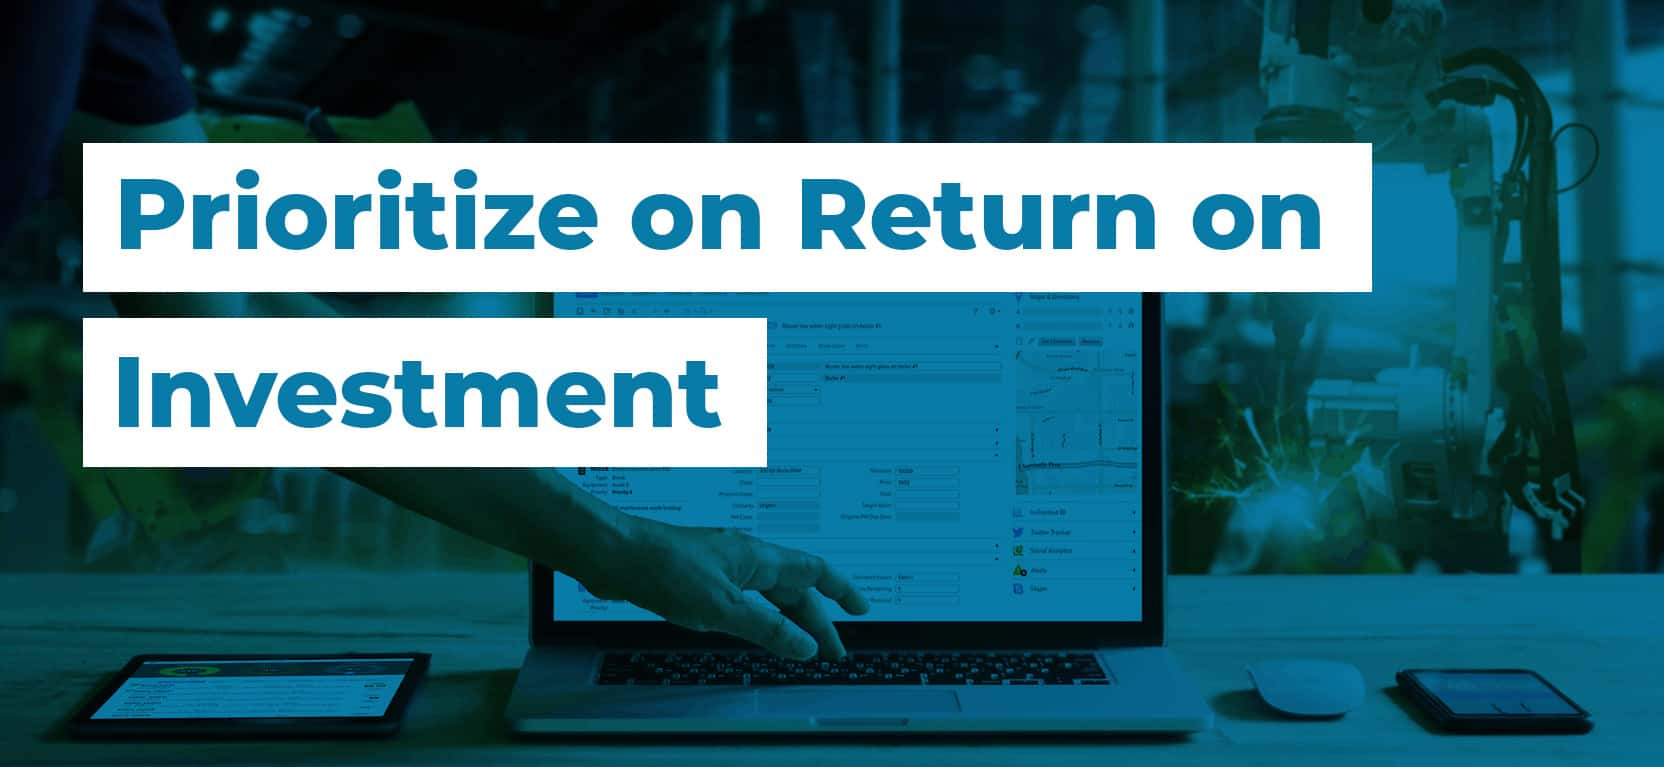 14 Prioritize on Return on Investment3